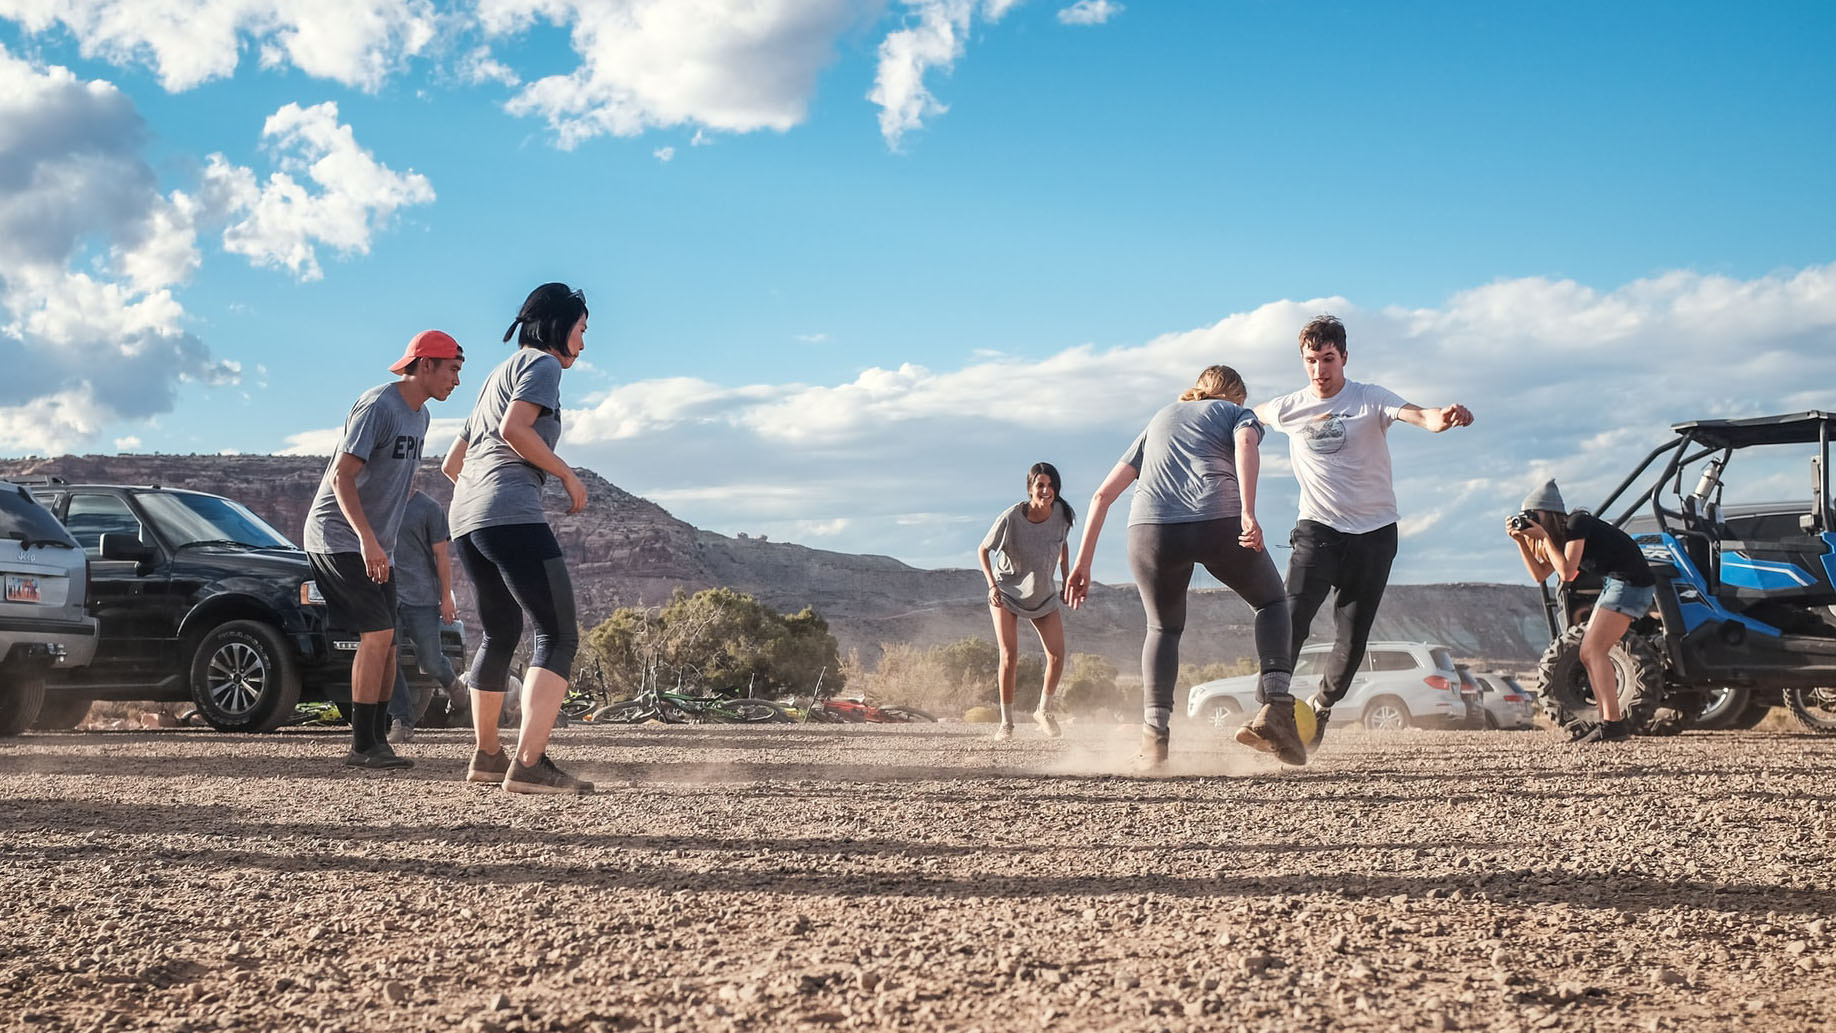 A group of young men and women playing soccer in a desert carpark